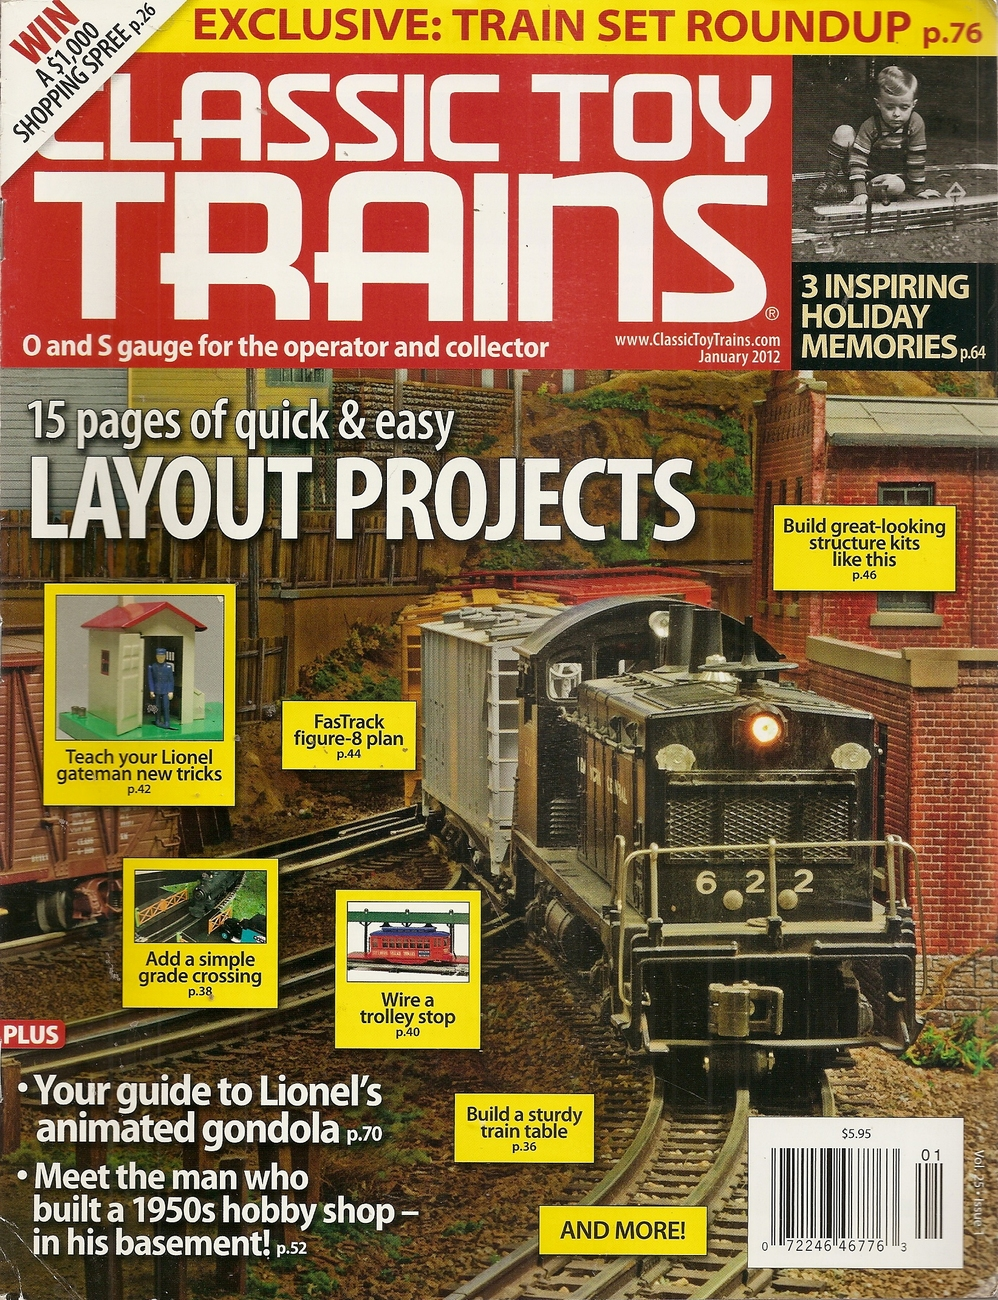 Primary image for CLASSIC TOY TRAINS JANUARY 2012